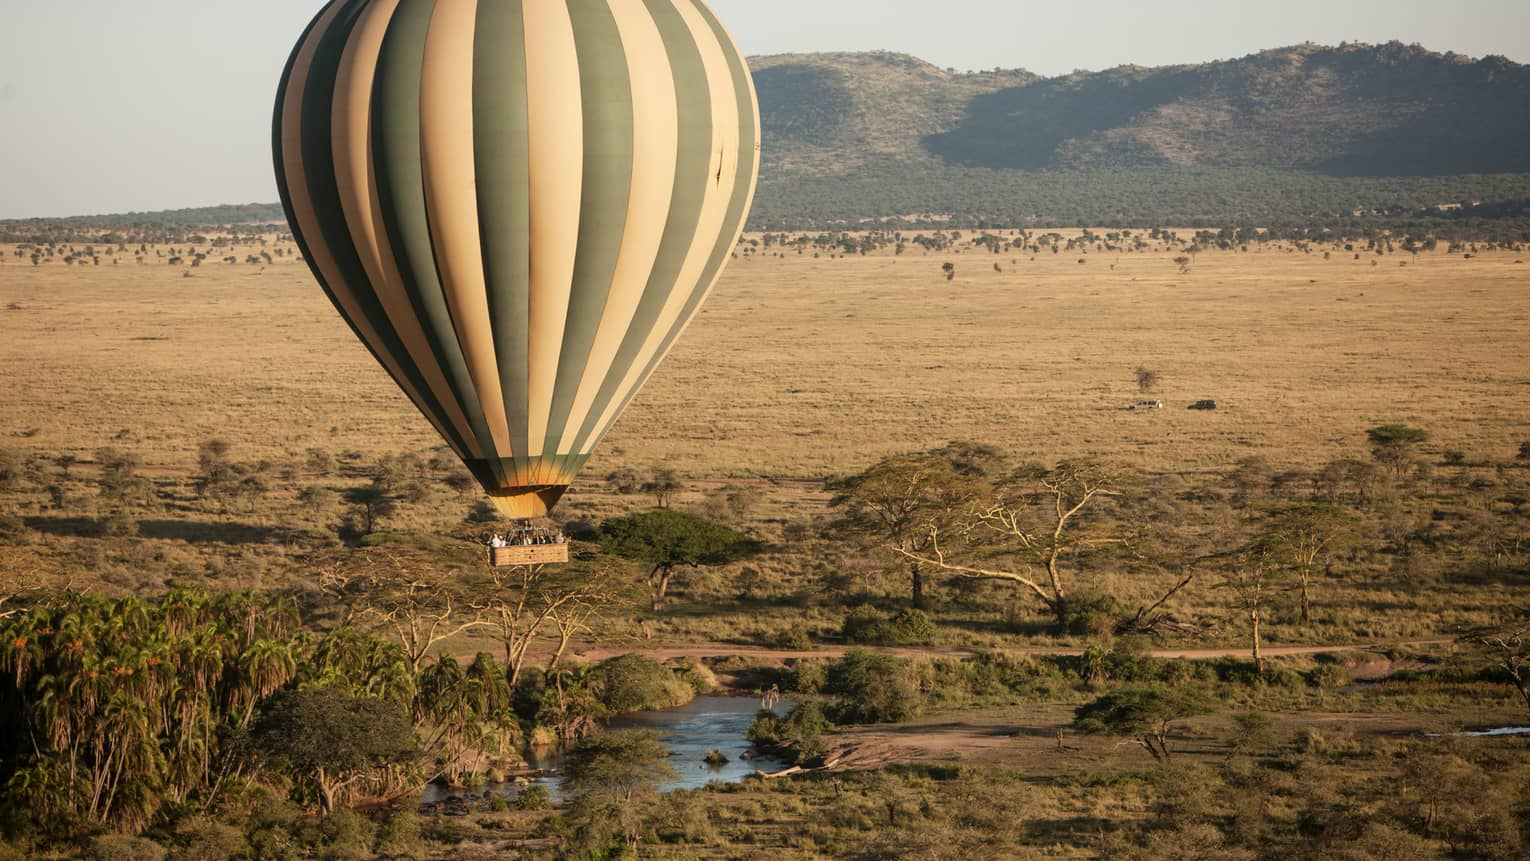 Striped hot air balloon hovers over Serengeti field